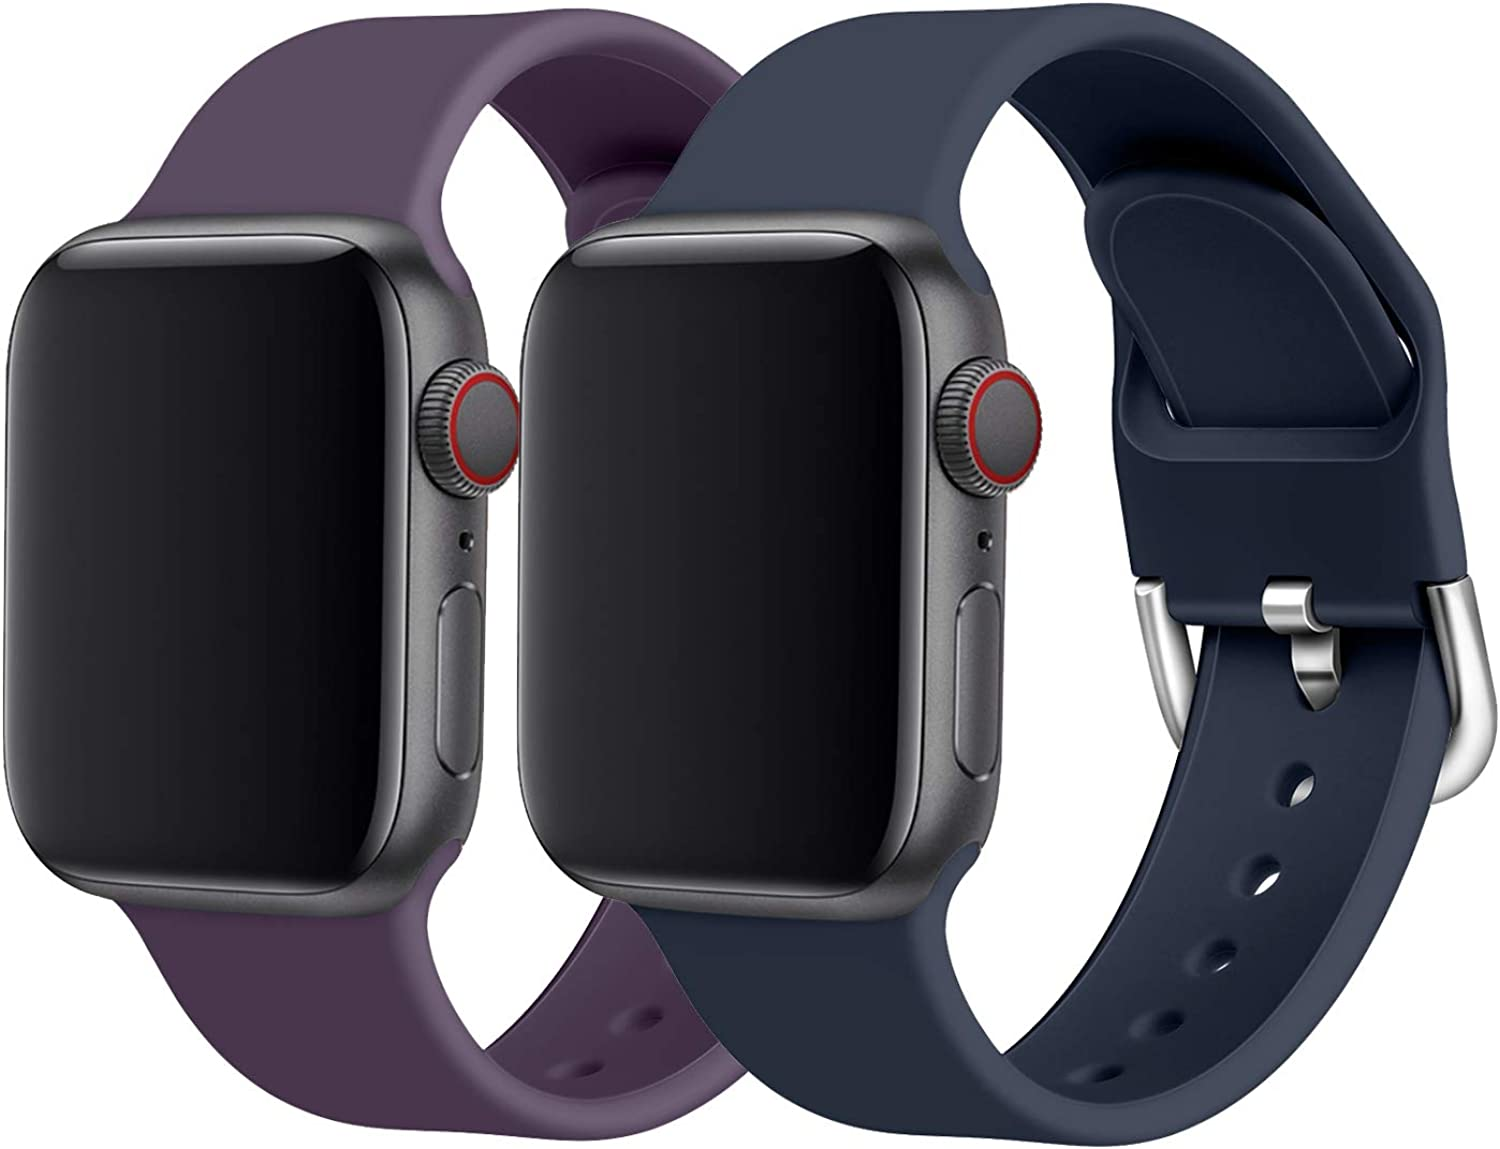 Seltureone Compatible with Apple Watch Band 38mm 40mm for Women Men,Soft Silicone Thin Narrow Replacement Slim Bands for iWatch Series 5/4/3/2/1